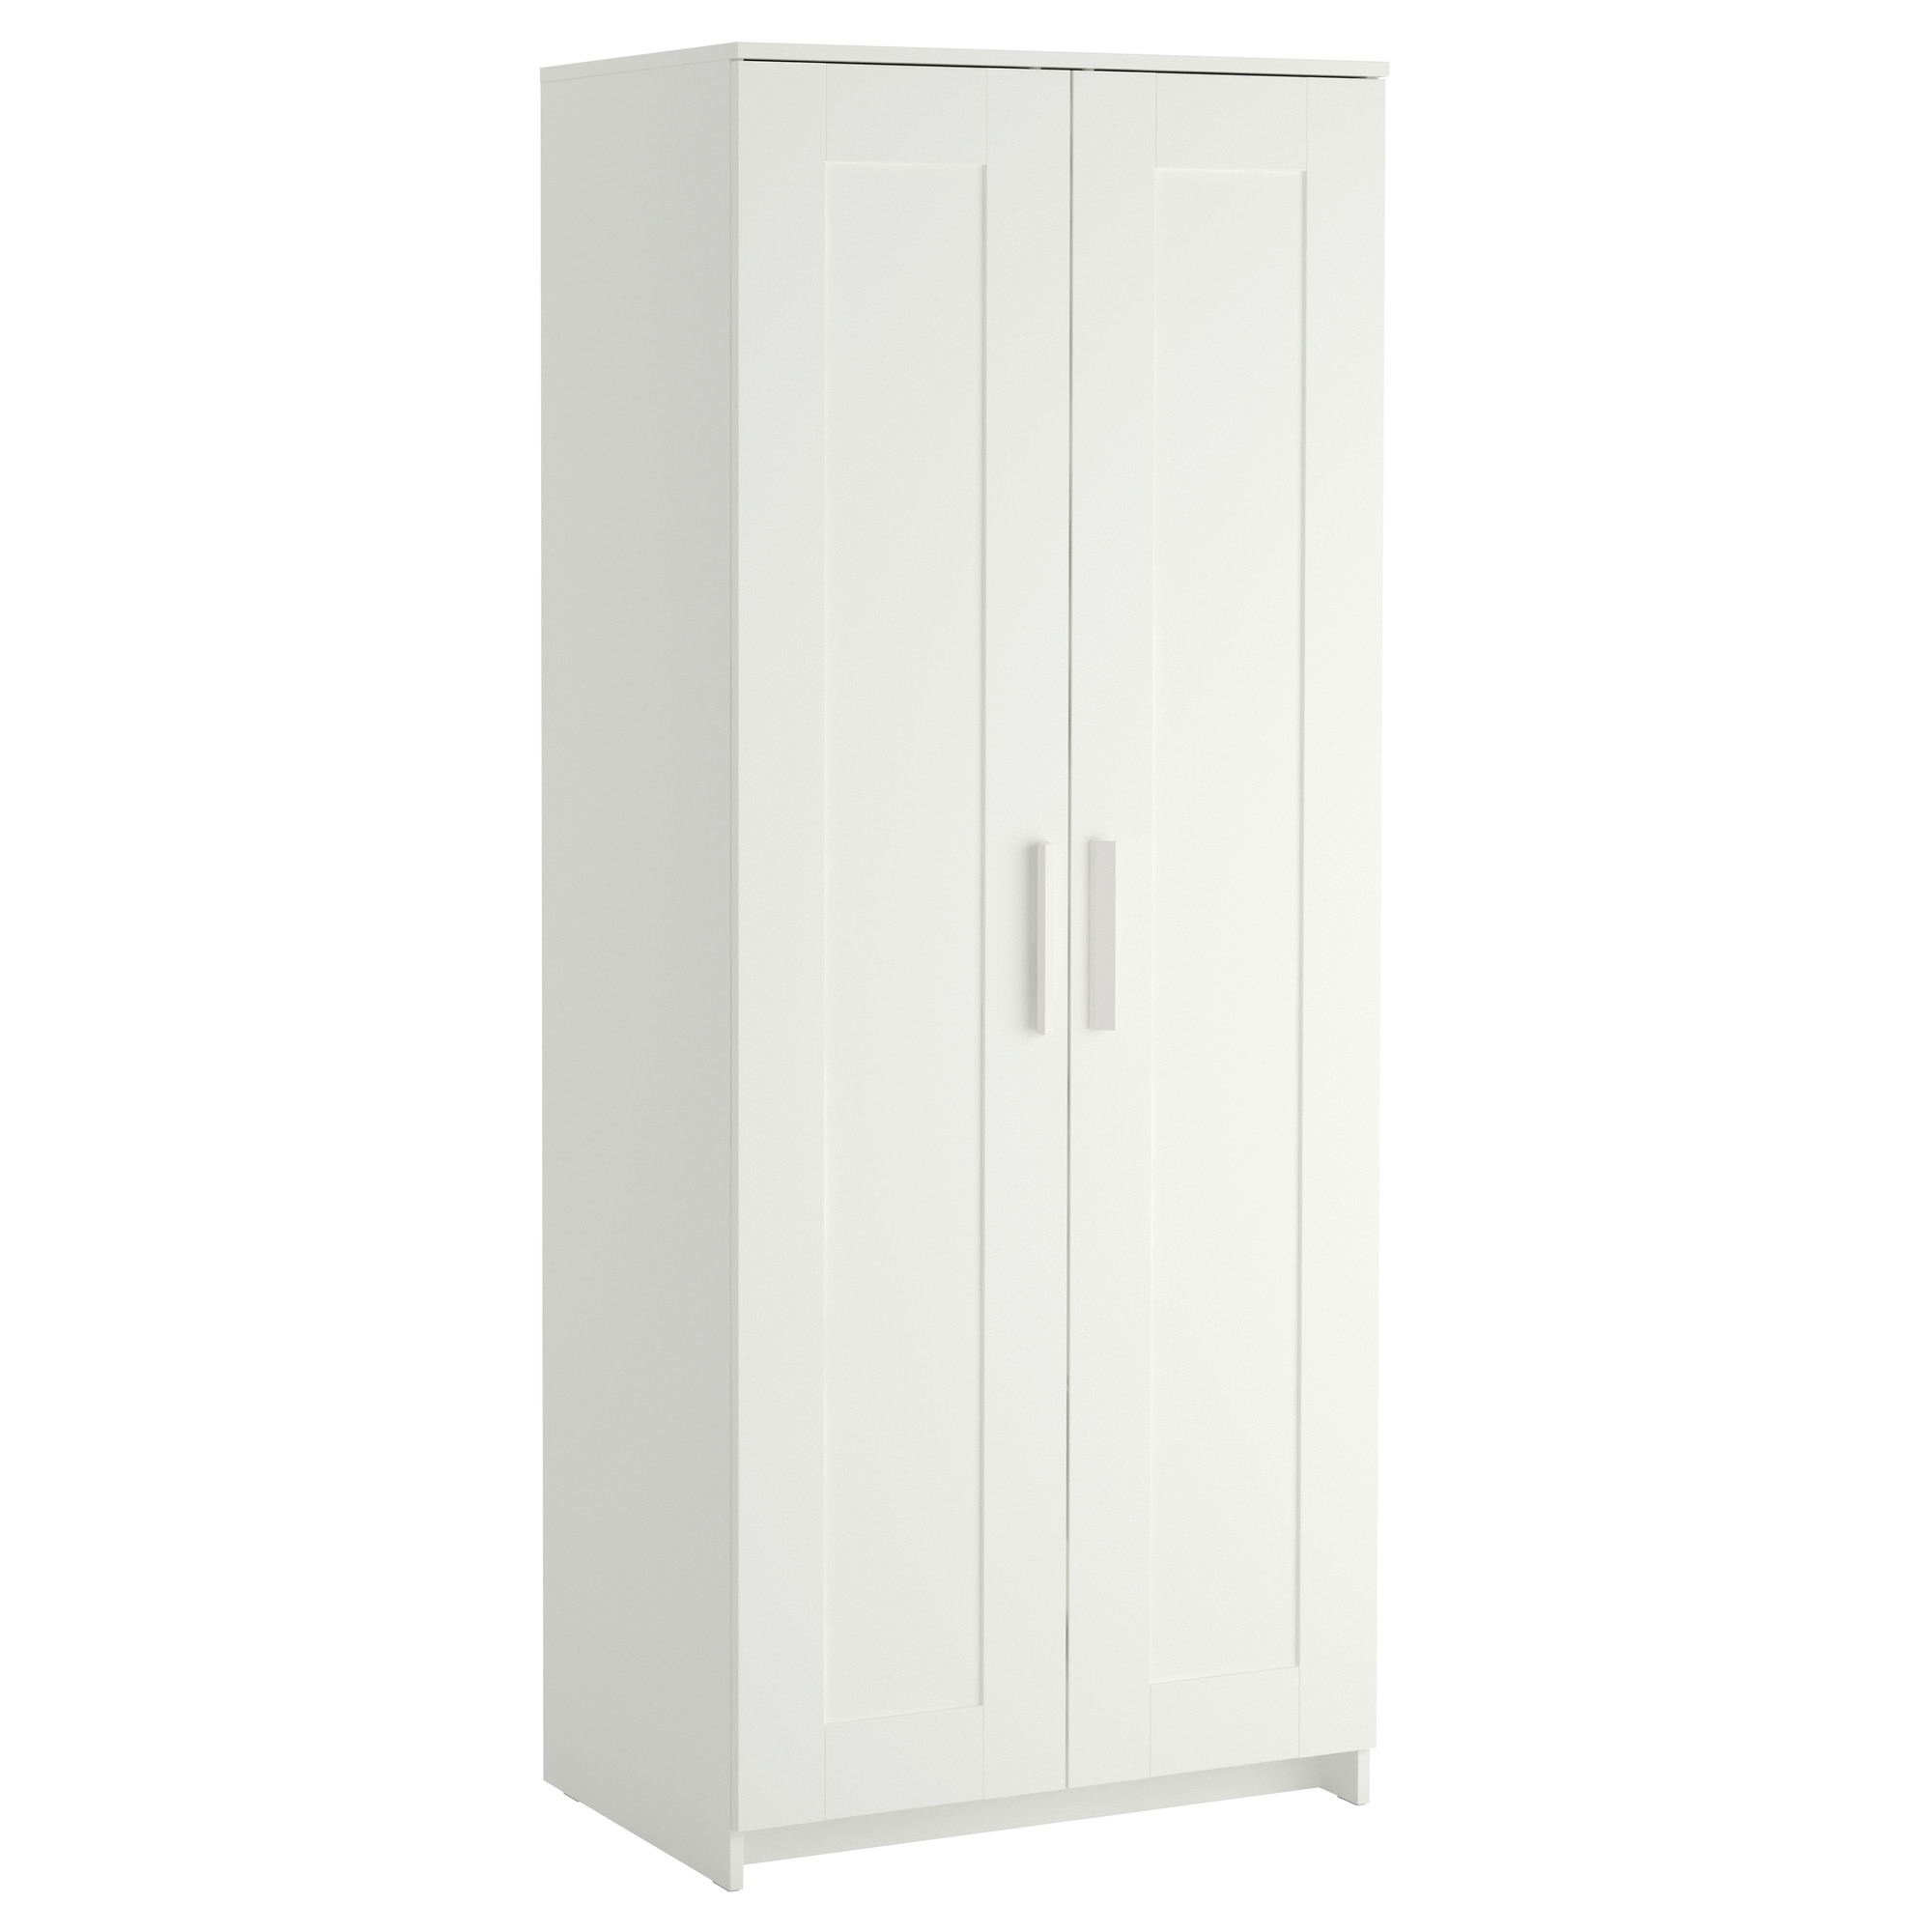 Trendy Brimnes Wardrobe With 2 Doors White 78x190 Cm – Ikea With Regard To Cheap White Wardrobes (View 5 of 15)